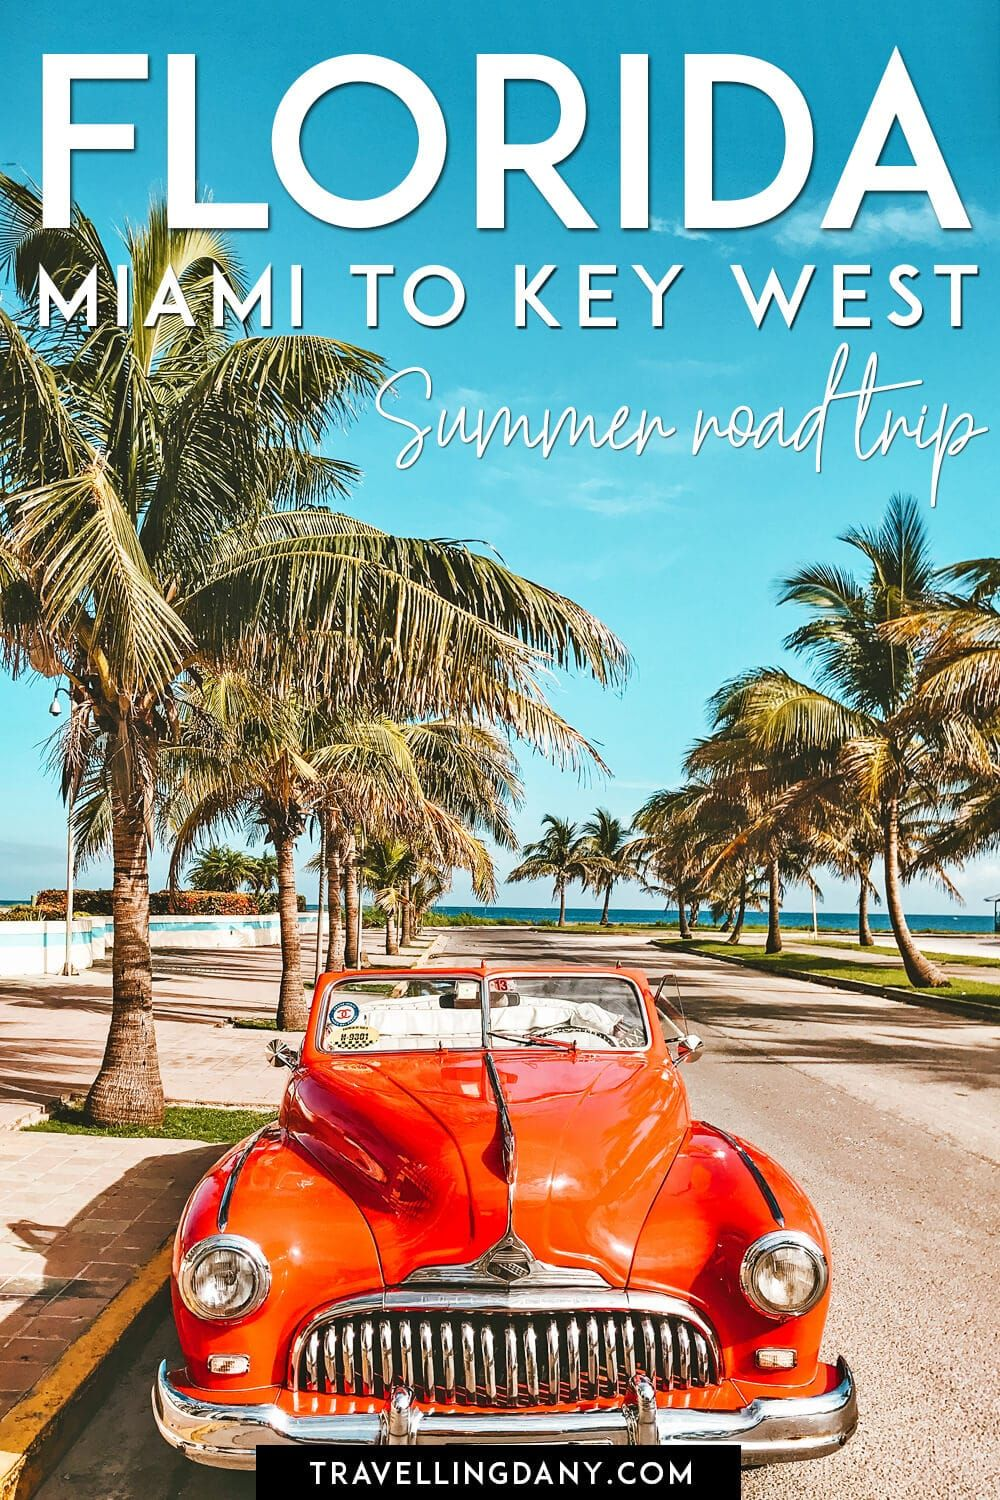 All the secret spots you should see on the way to Key West (Florida)!